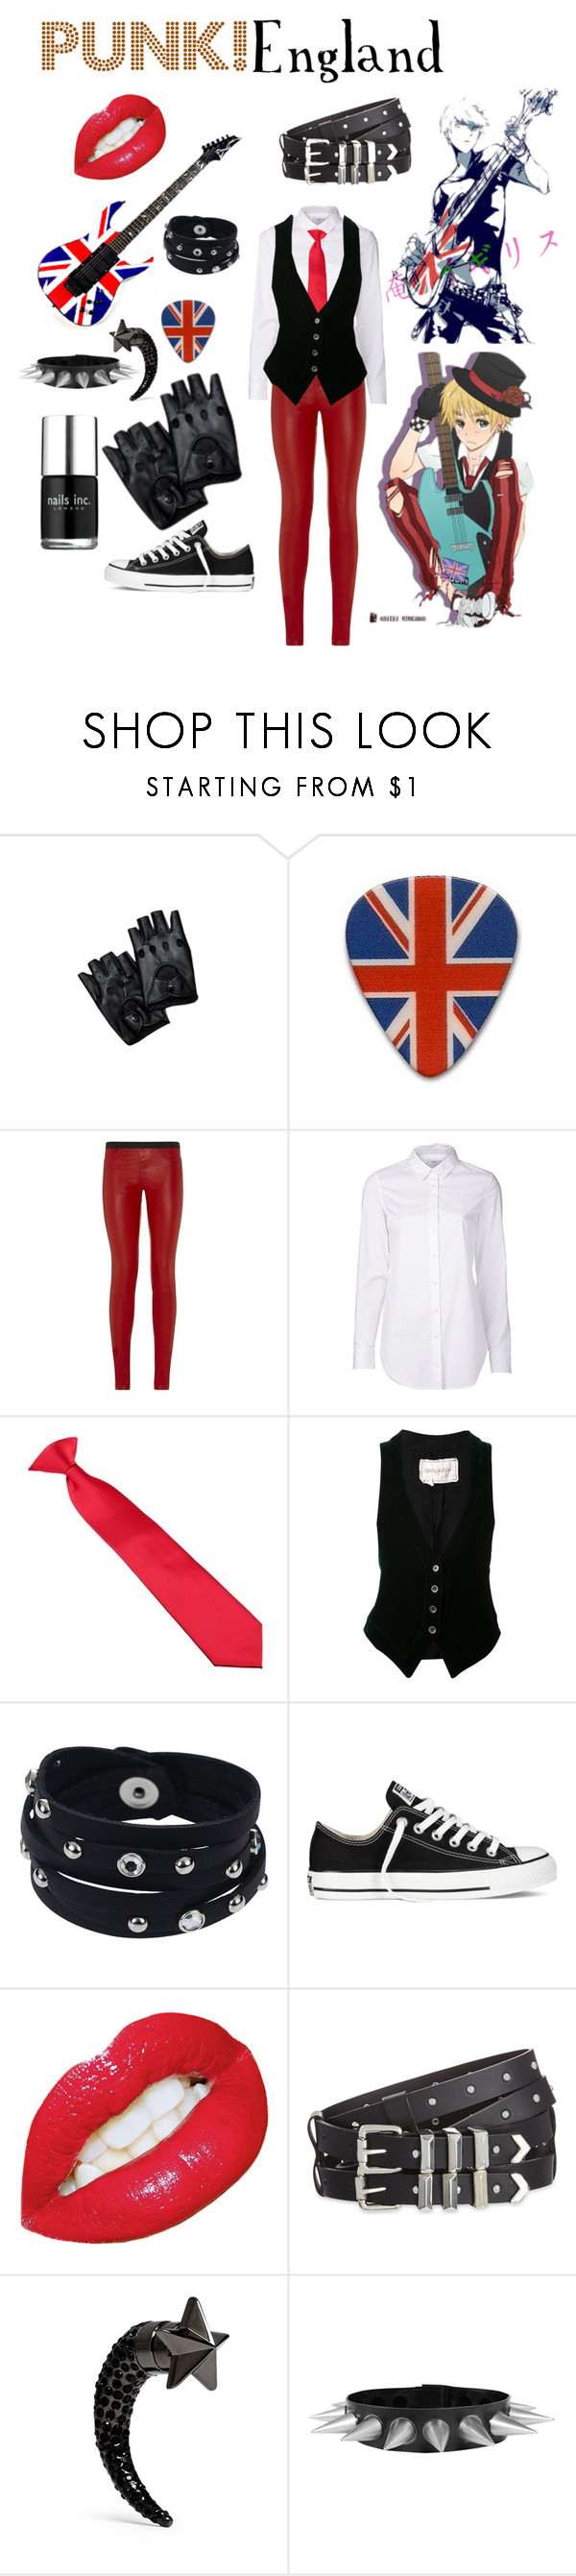 """""""Punk Enland (hetalia)"""" by isabel-kitty-marie ❤ liked on Polyvore featuring Julio, Helmut Lang, Closed, Greg Lauren, Vance Co., Converse, The Kooples, Givenchy, Nails Inc. and Punk"""